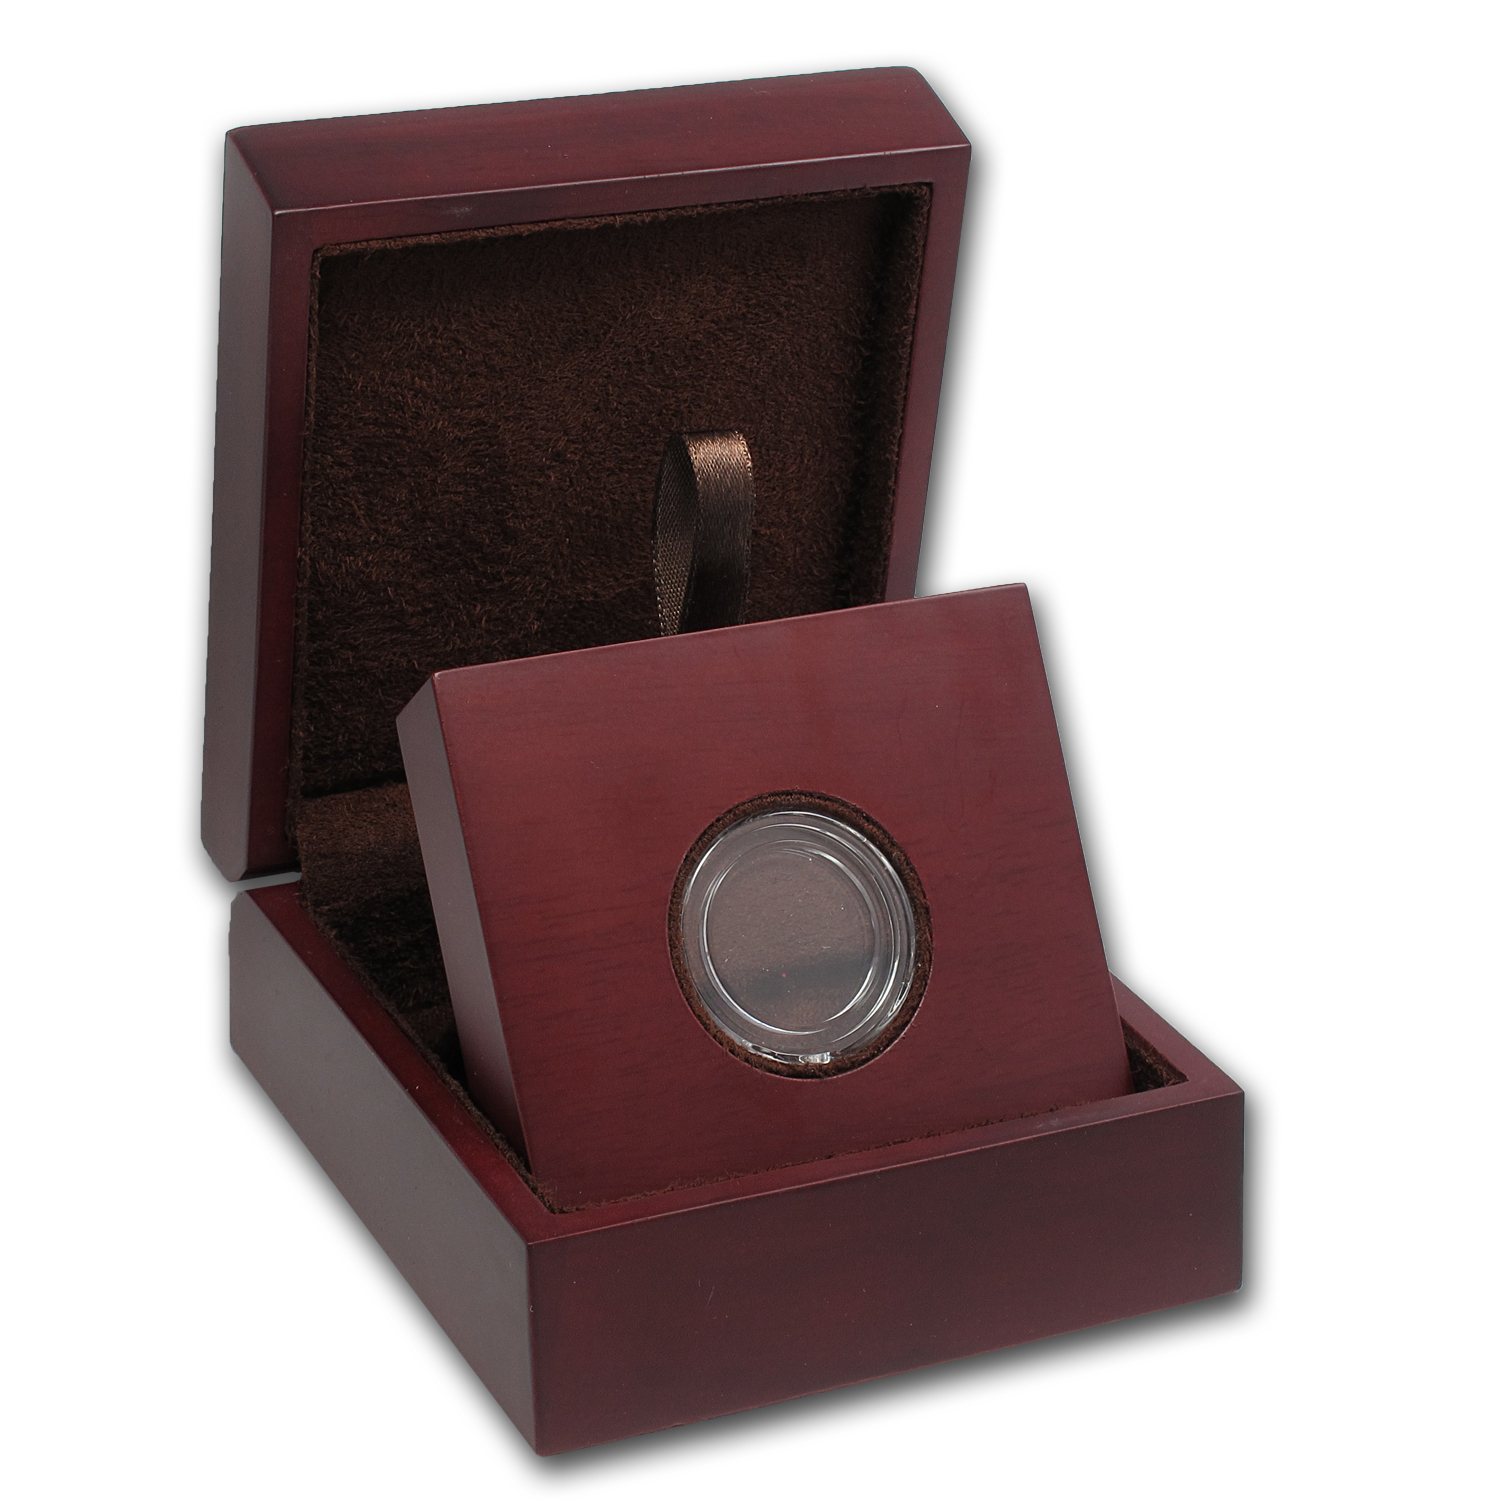 APMEX Wood Gift Box - Includes 21 mm Direct Fit Air-Tite Holder